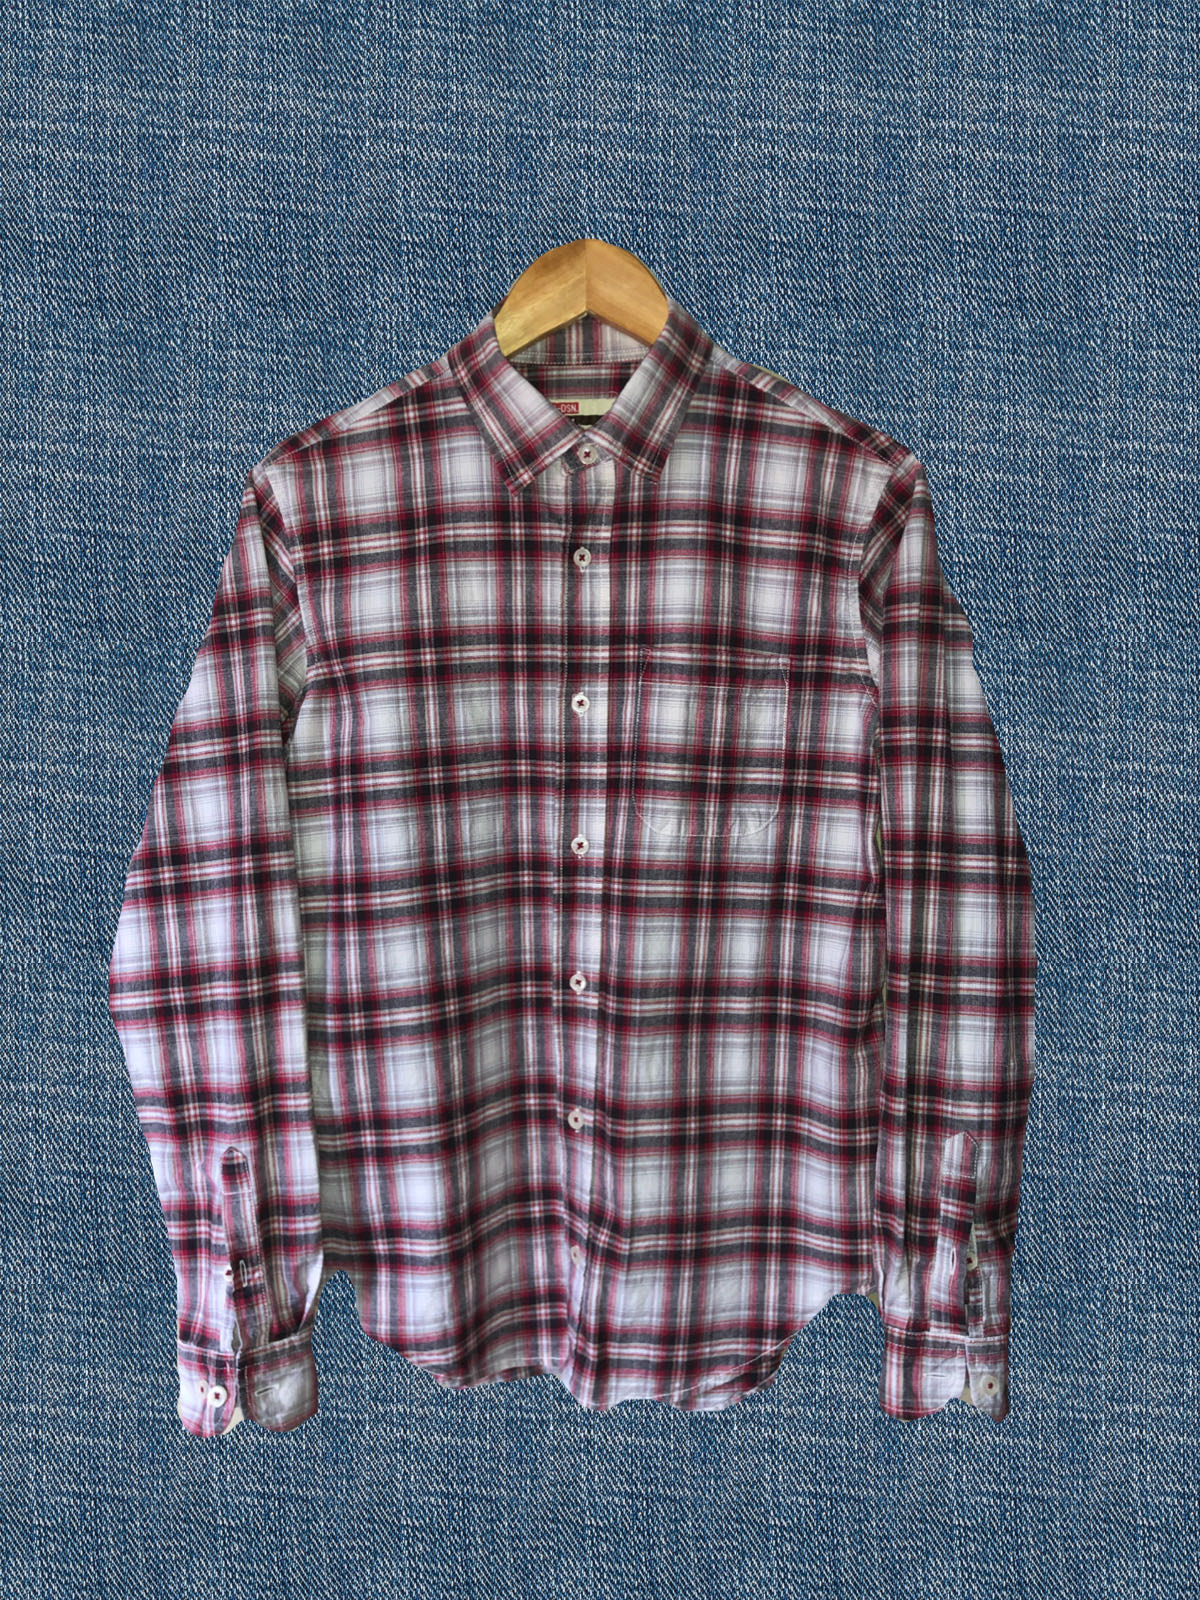 Thrift – Japanese Flannel (Red/White)